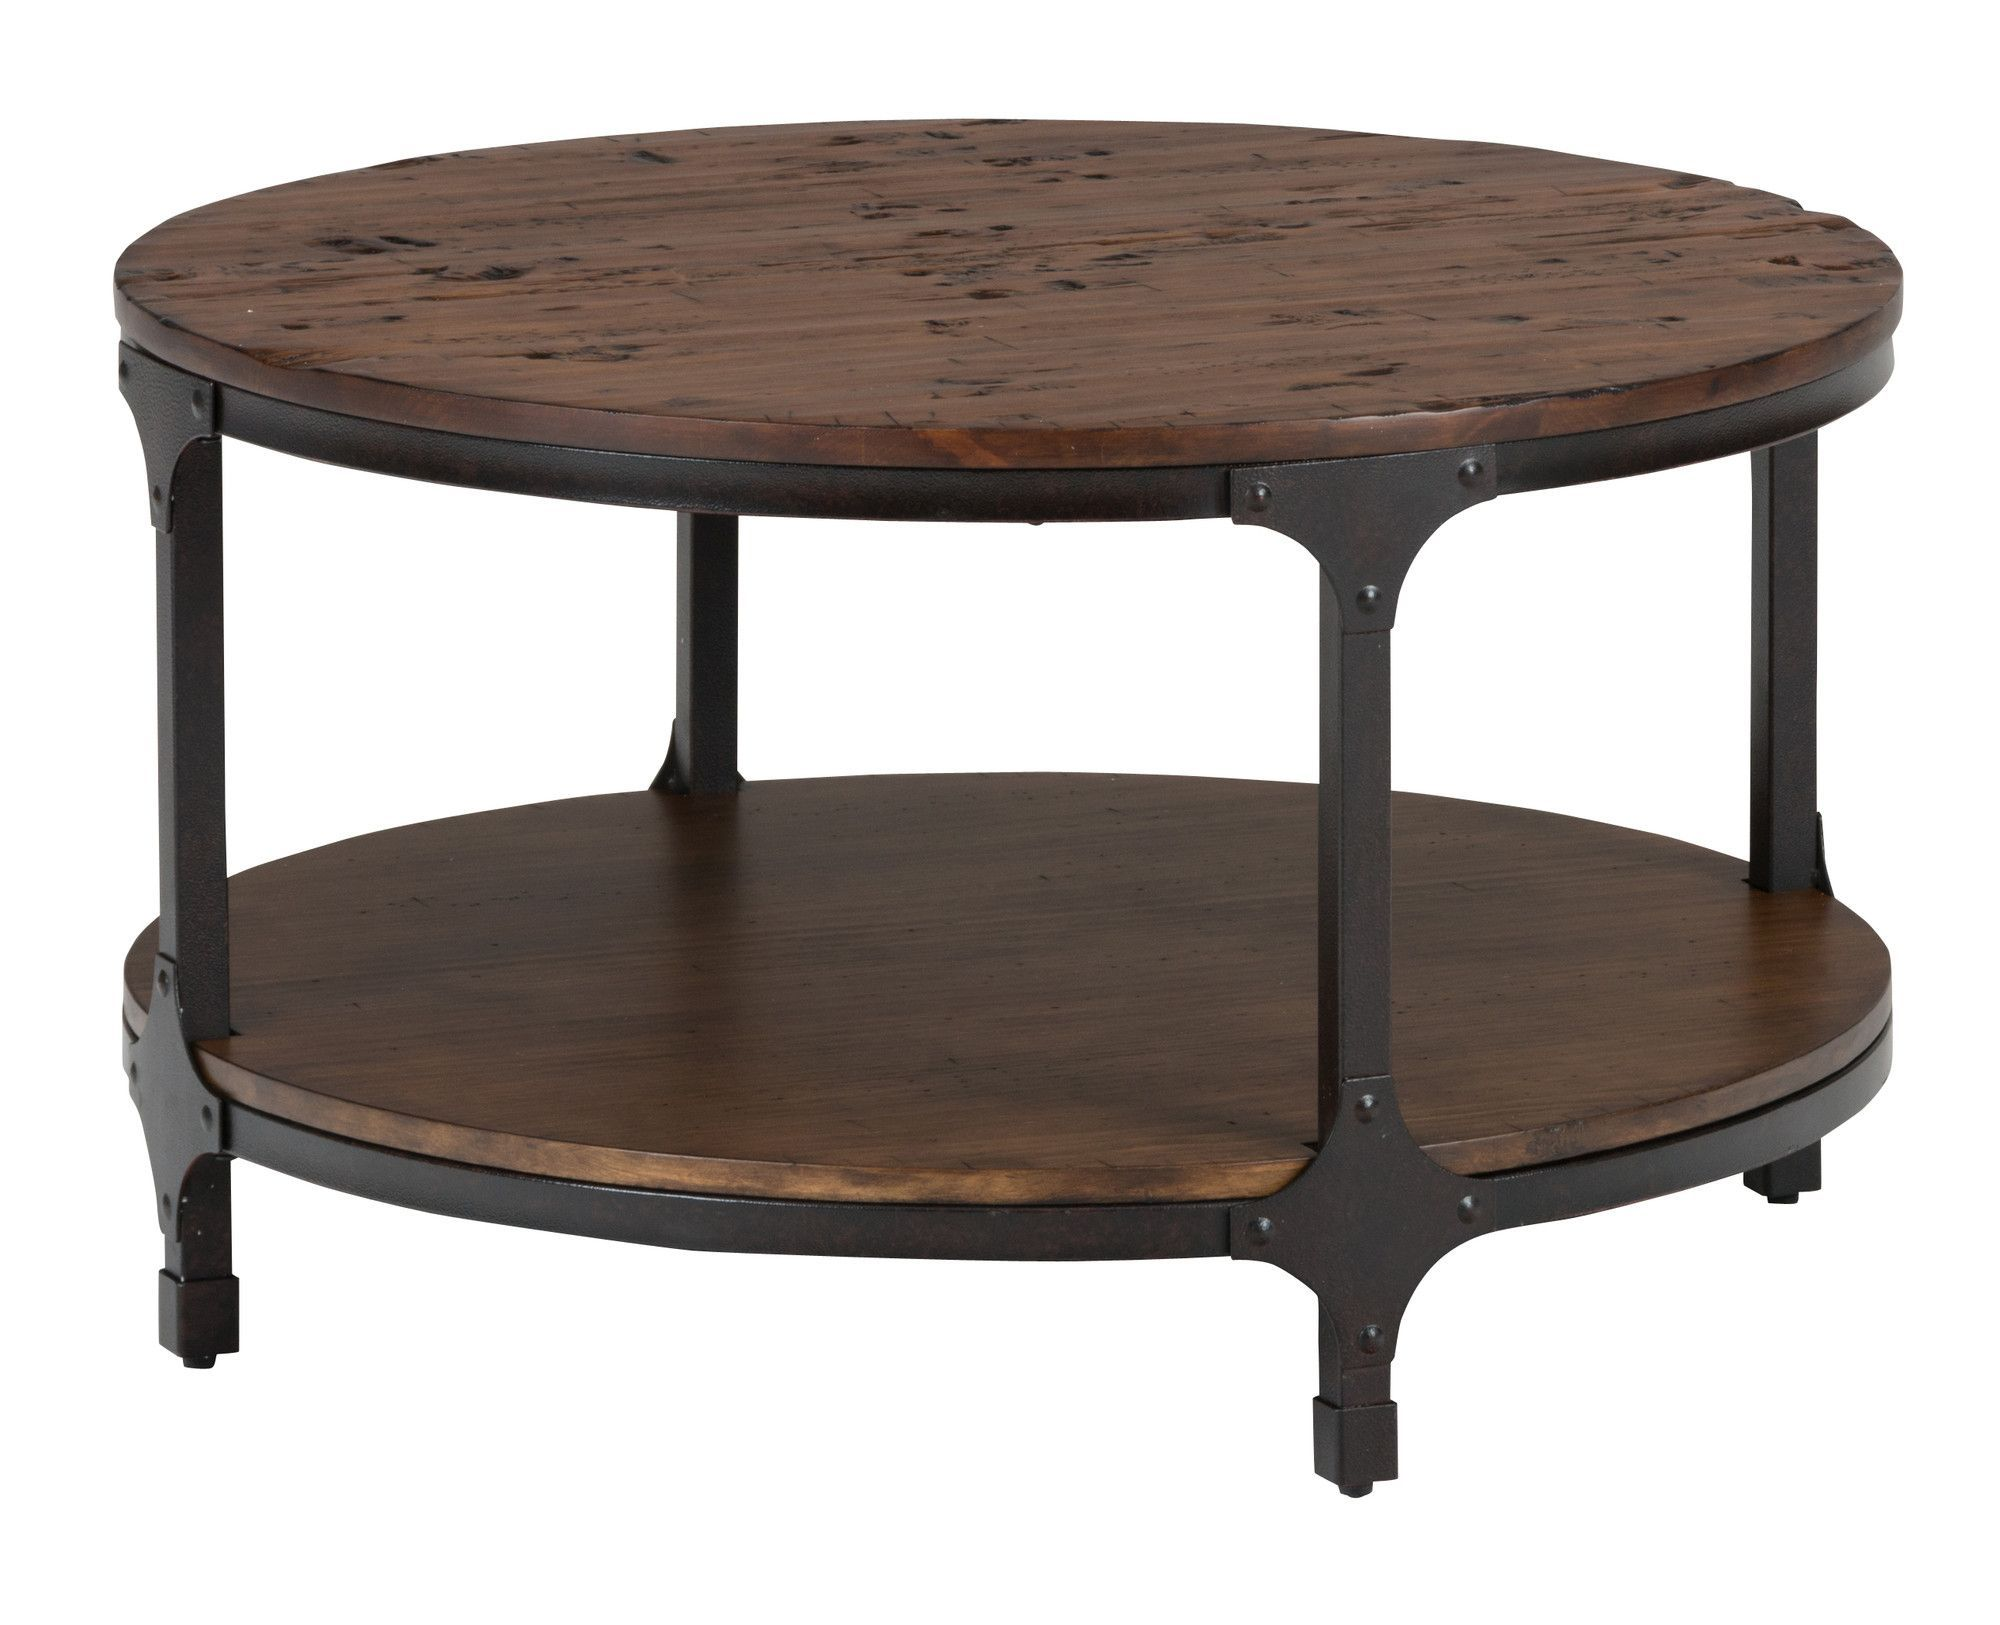 Laurel Foundry Modern Farmhouse Carolyn Coffee Table Reviews Wayfair Coffee Table Round Coffee Table Round Cocktail Tables [ 1625 x 2000 Pixel ]